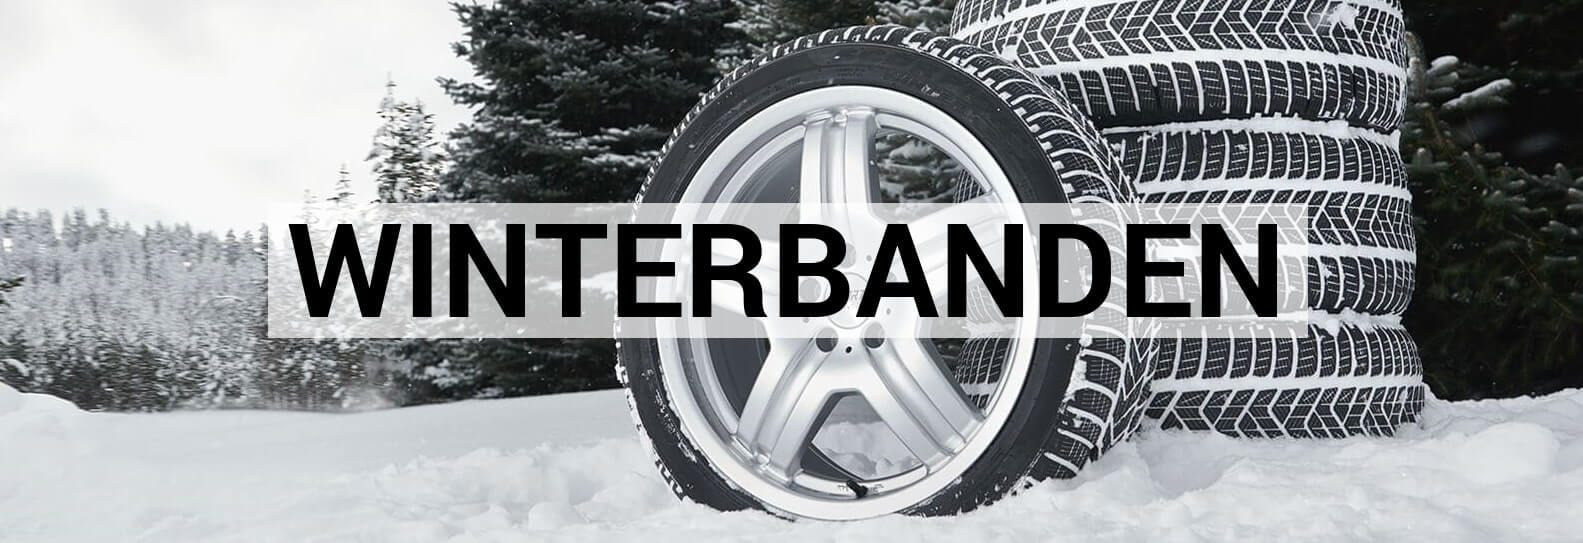 Winterbanden Kia